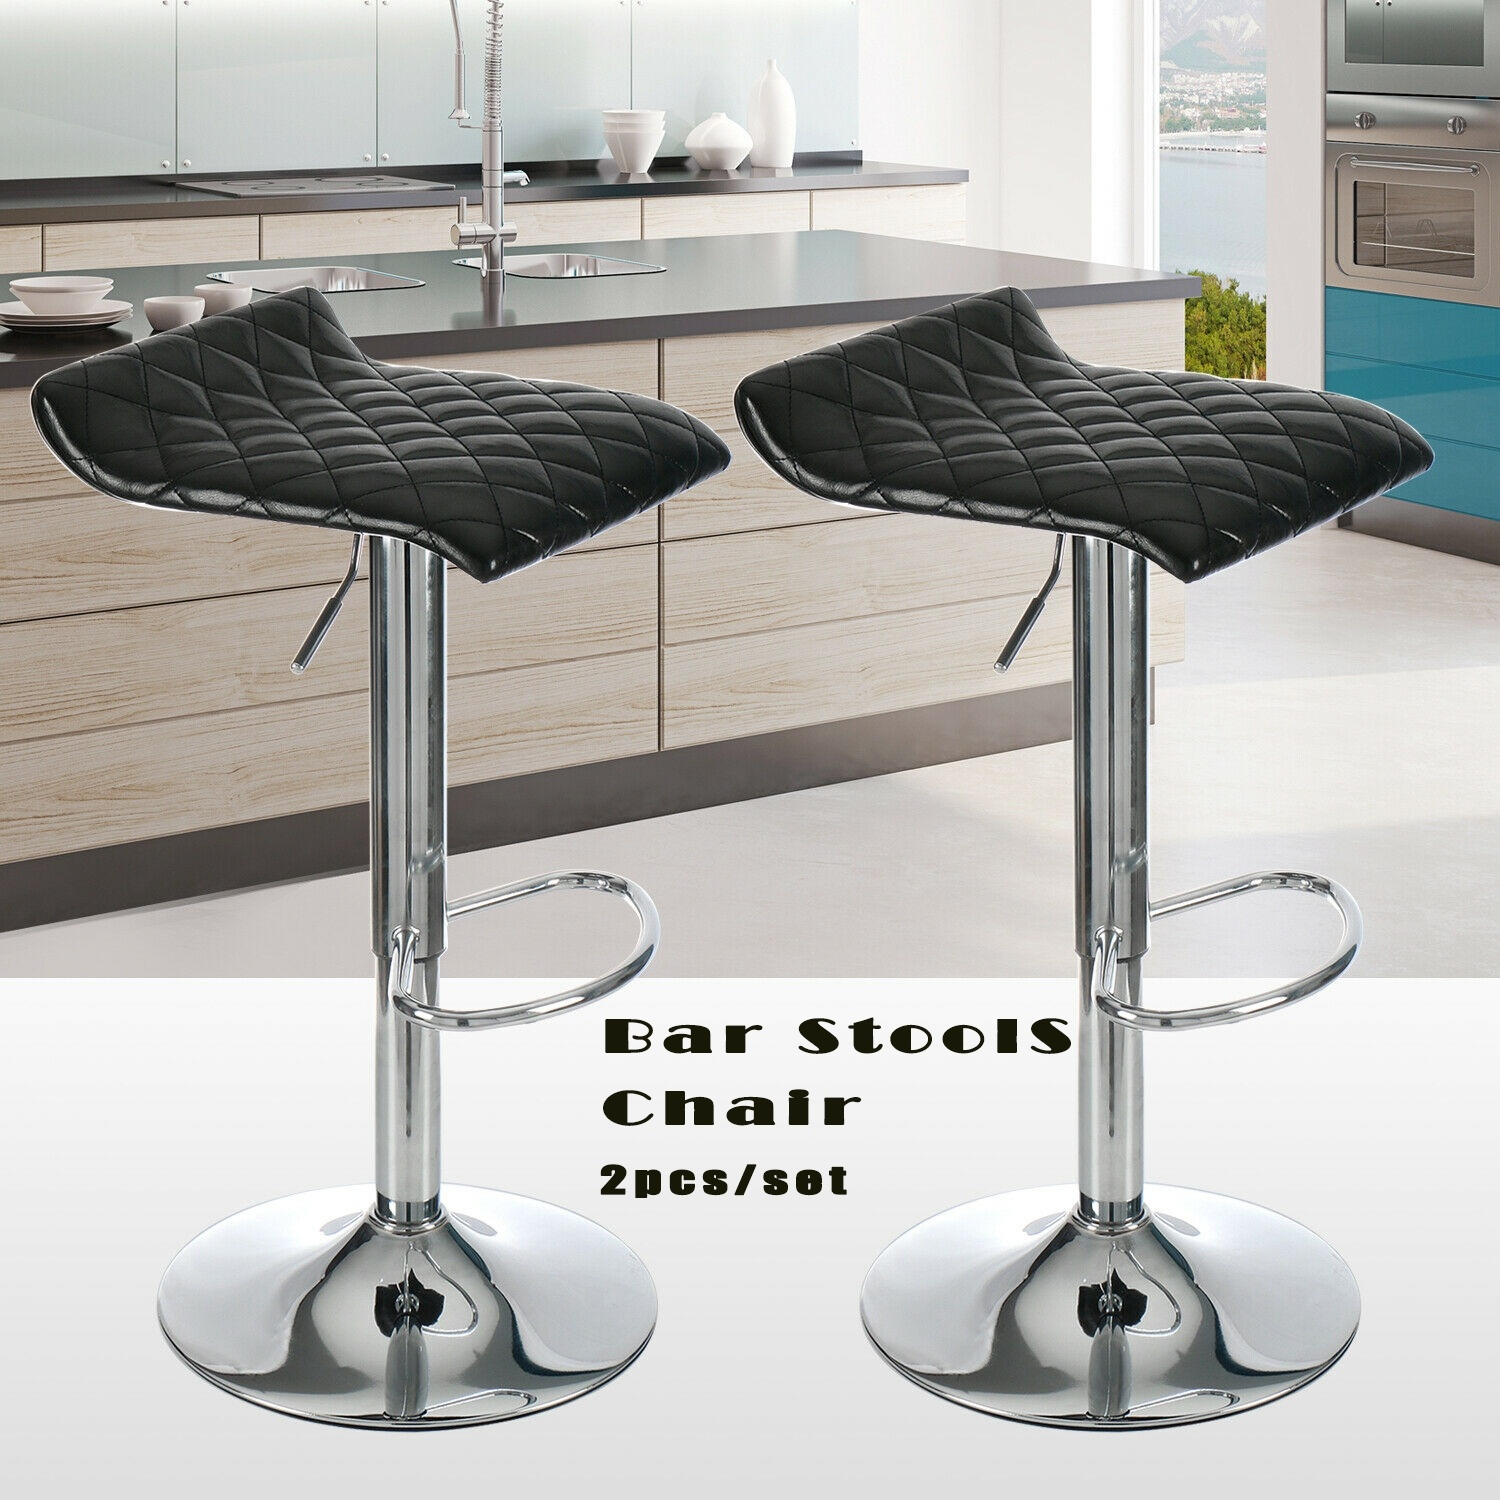 Set Of 2 Bar Stools Twill Leather Adjustable Swivel Pub Kitchen Breakfast Chairs